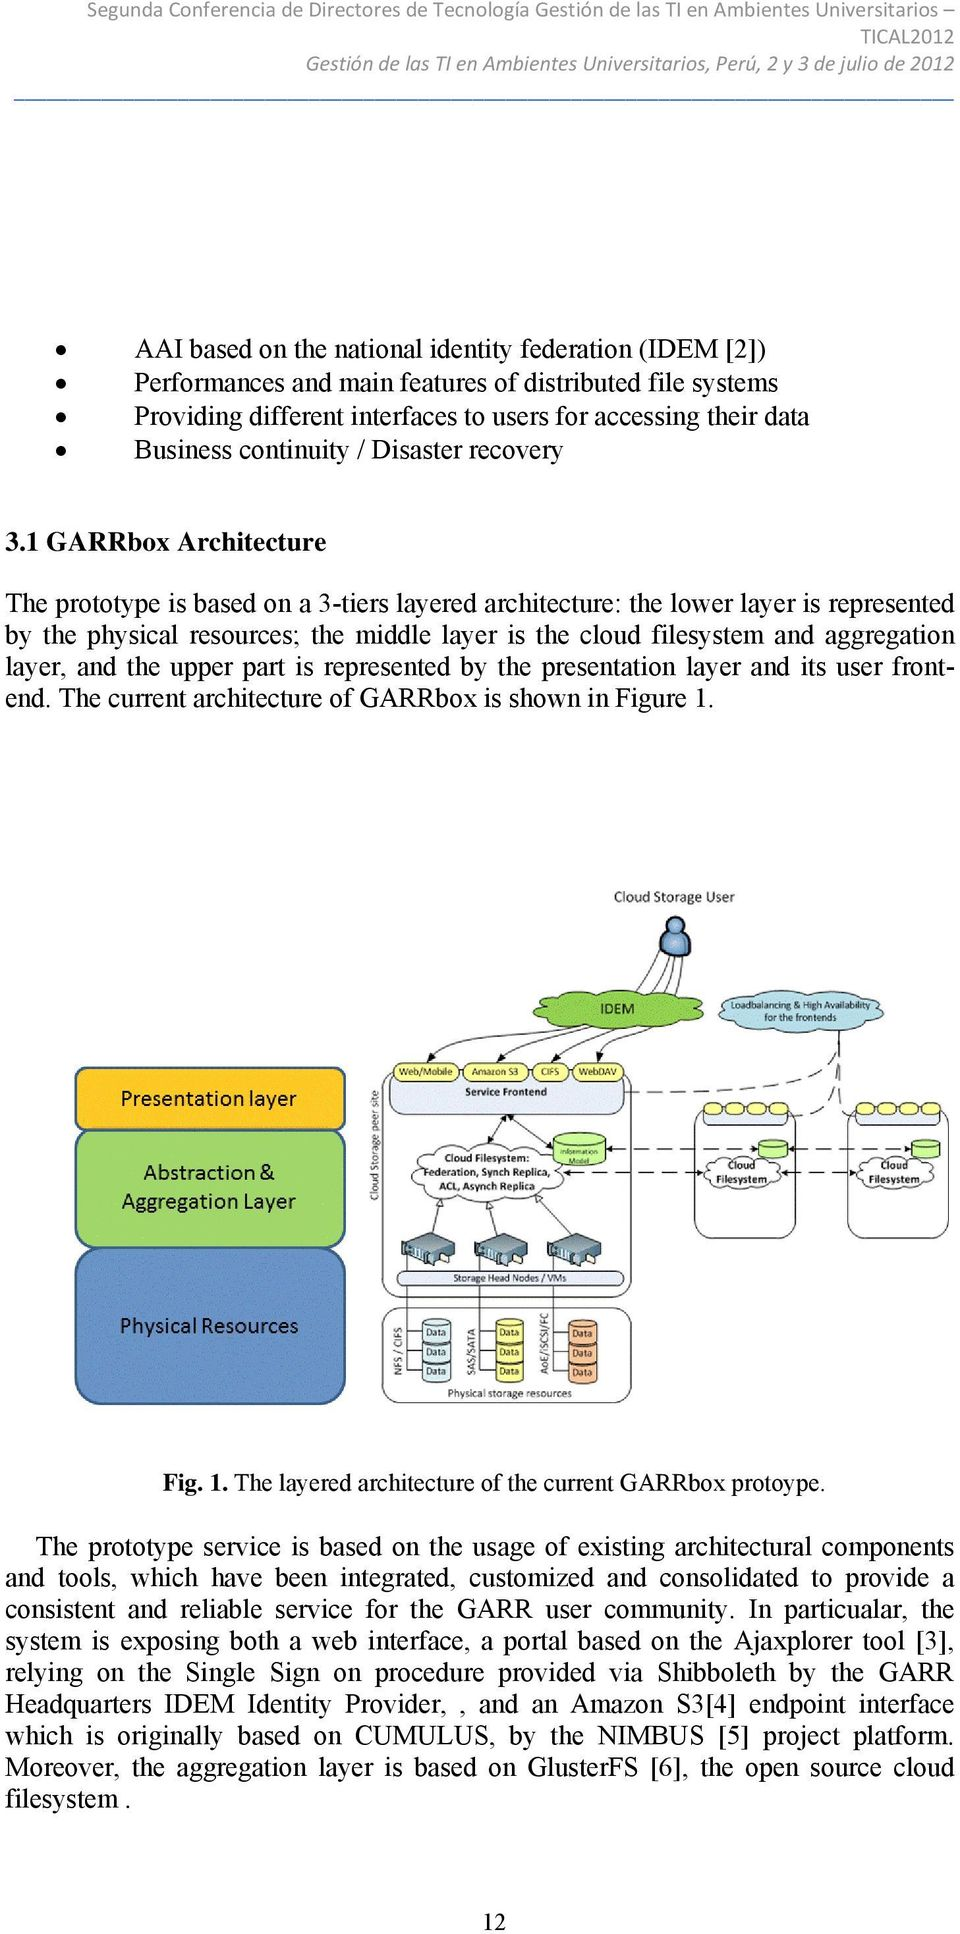 1 GARRbox Architecture The prototype is based on a 3-tiers layered architecture: the lower layer is represented by the physical resources; the middle layer is the cloud filesystem and aggregation